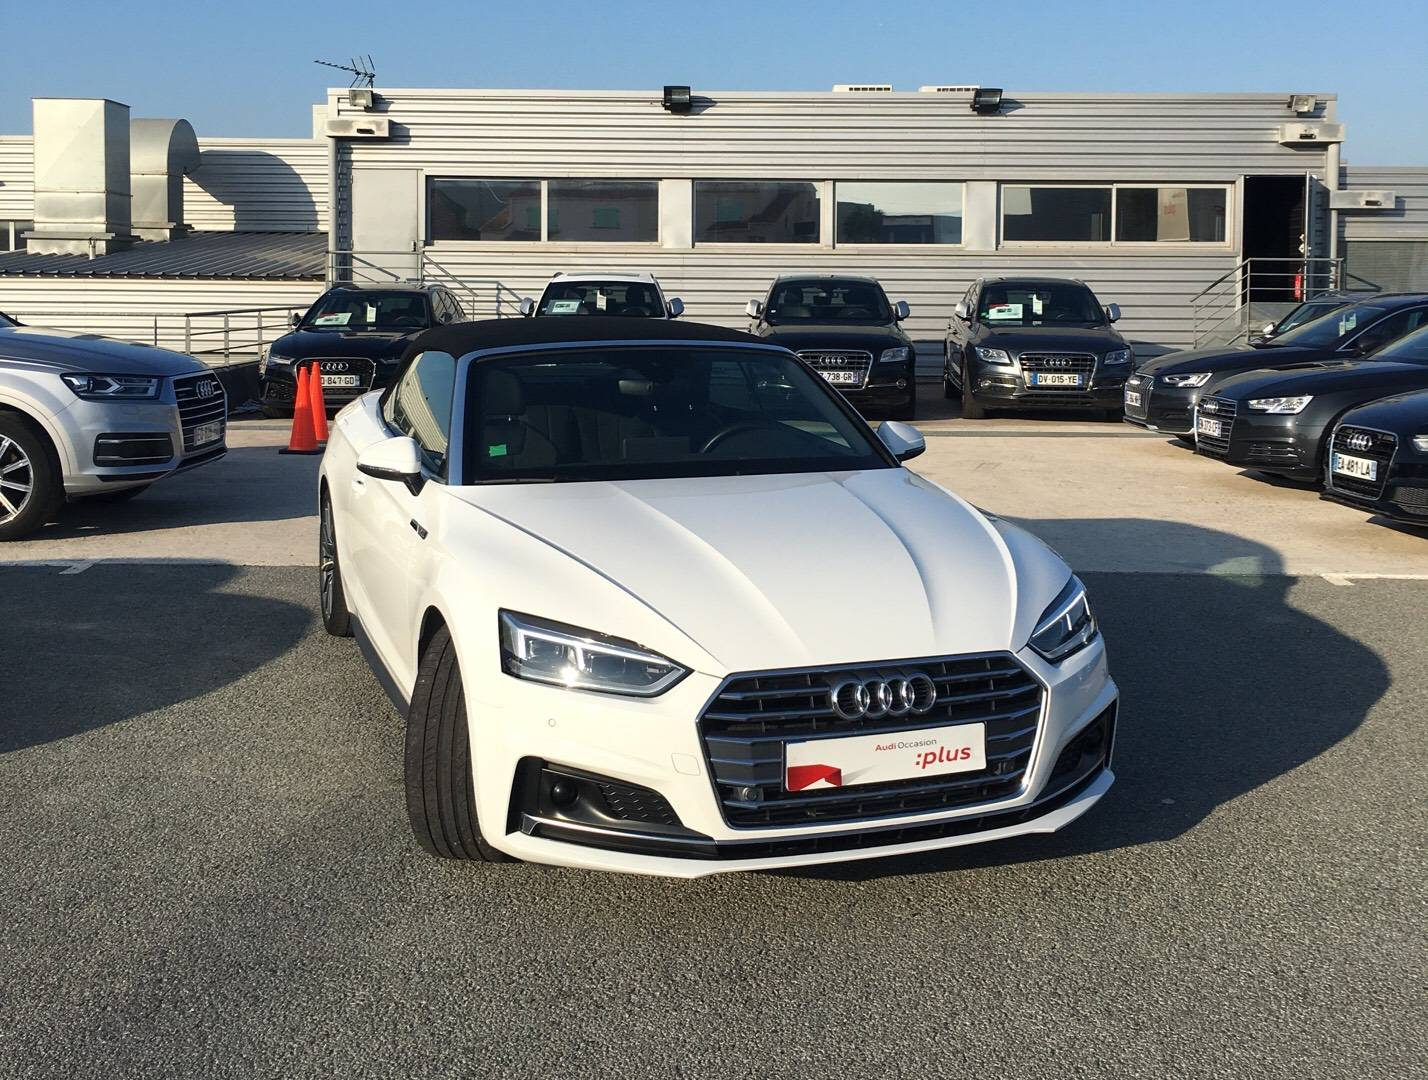 A5 Cabriolet 2.0 TFSI 190 S tronic 7